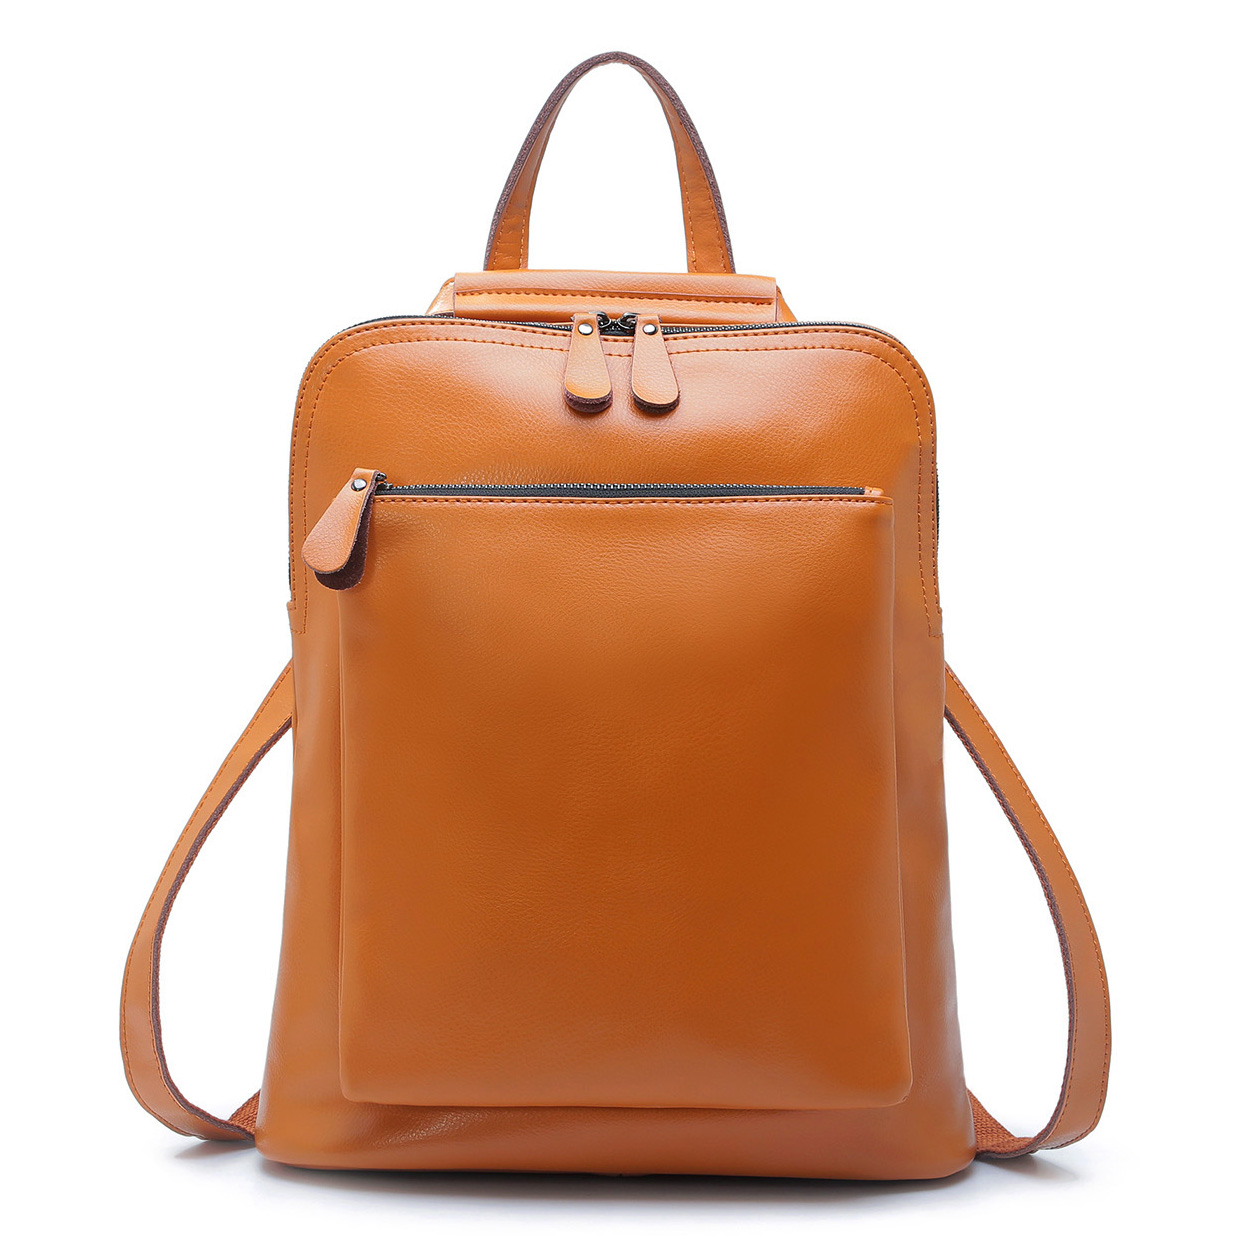 Leather Backpacks Women NRqhQbt4